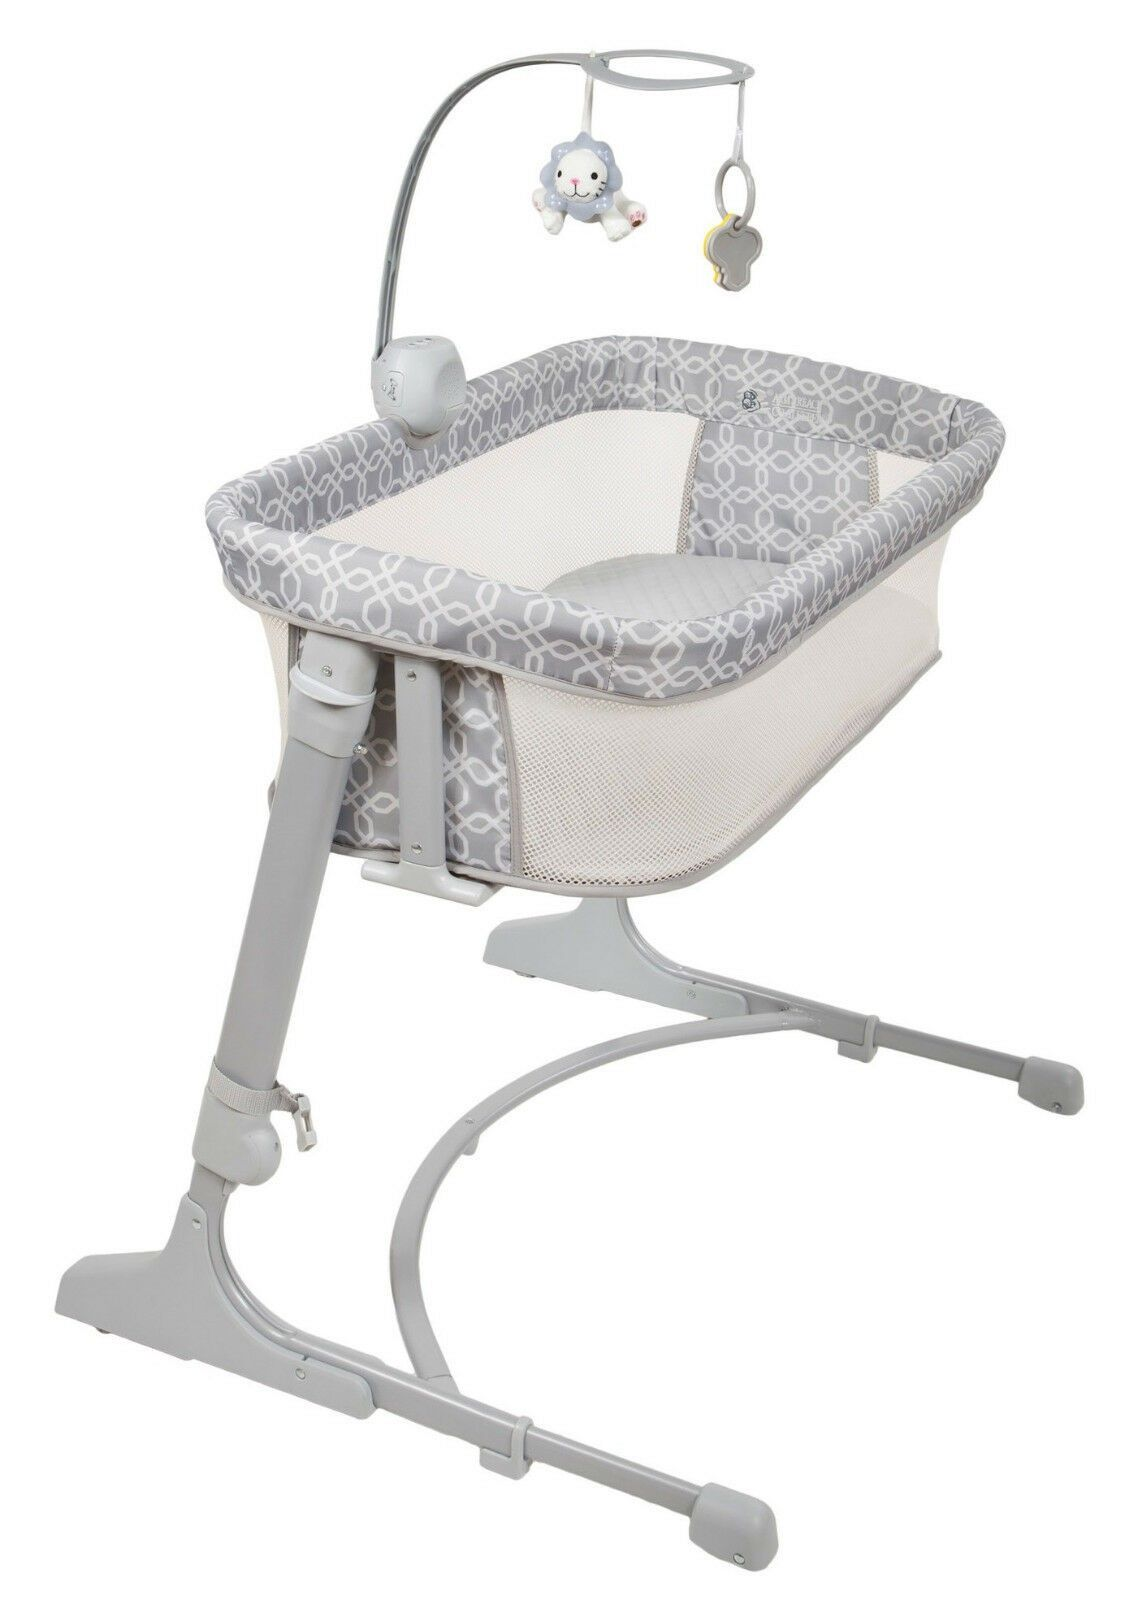 Bassinet In Bahasa Malaysia Malaysia Airlines Bassinet Weight